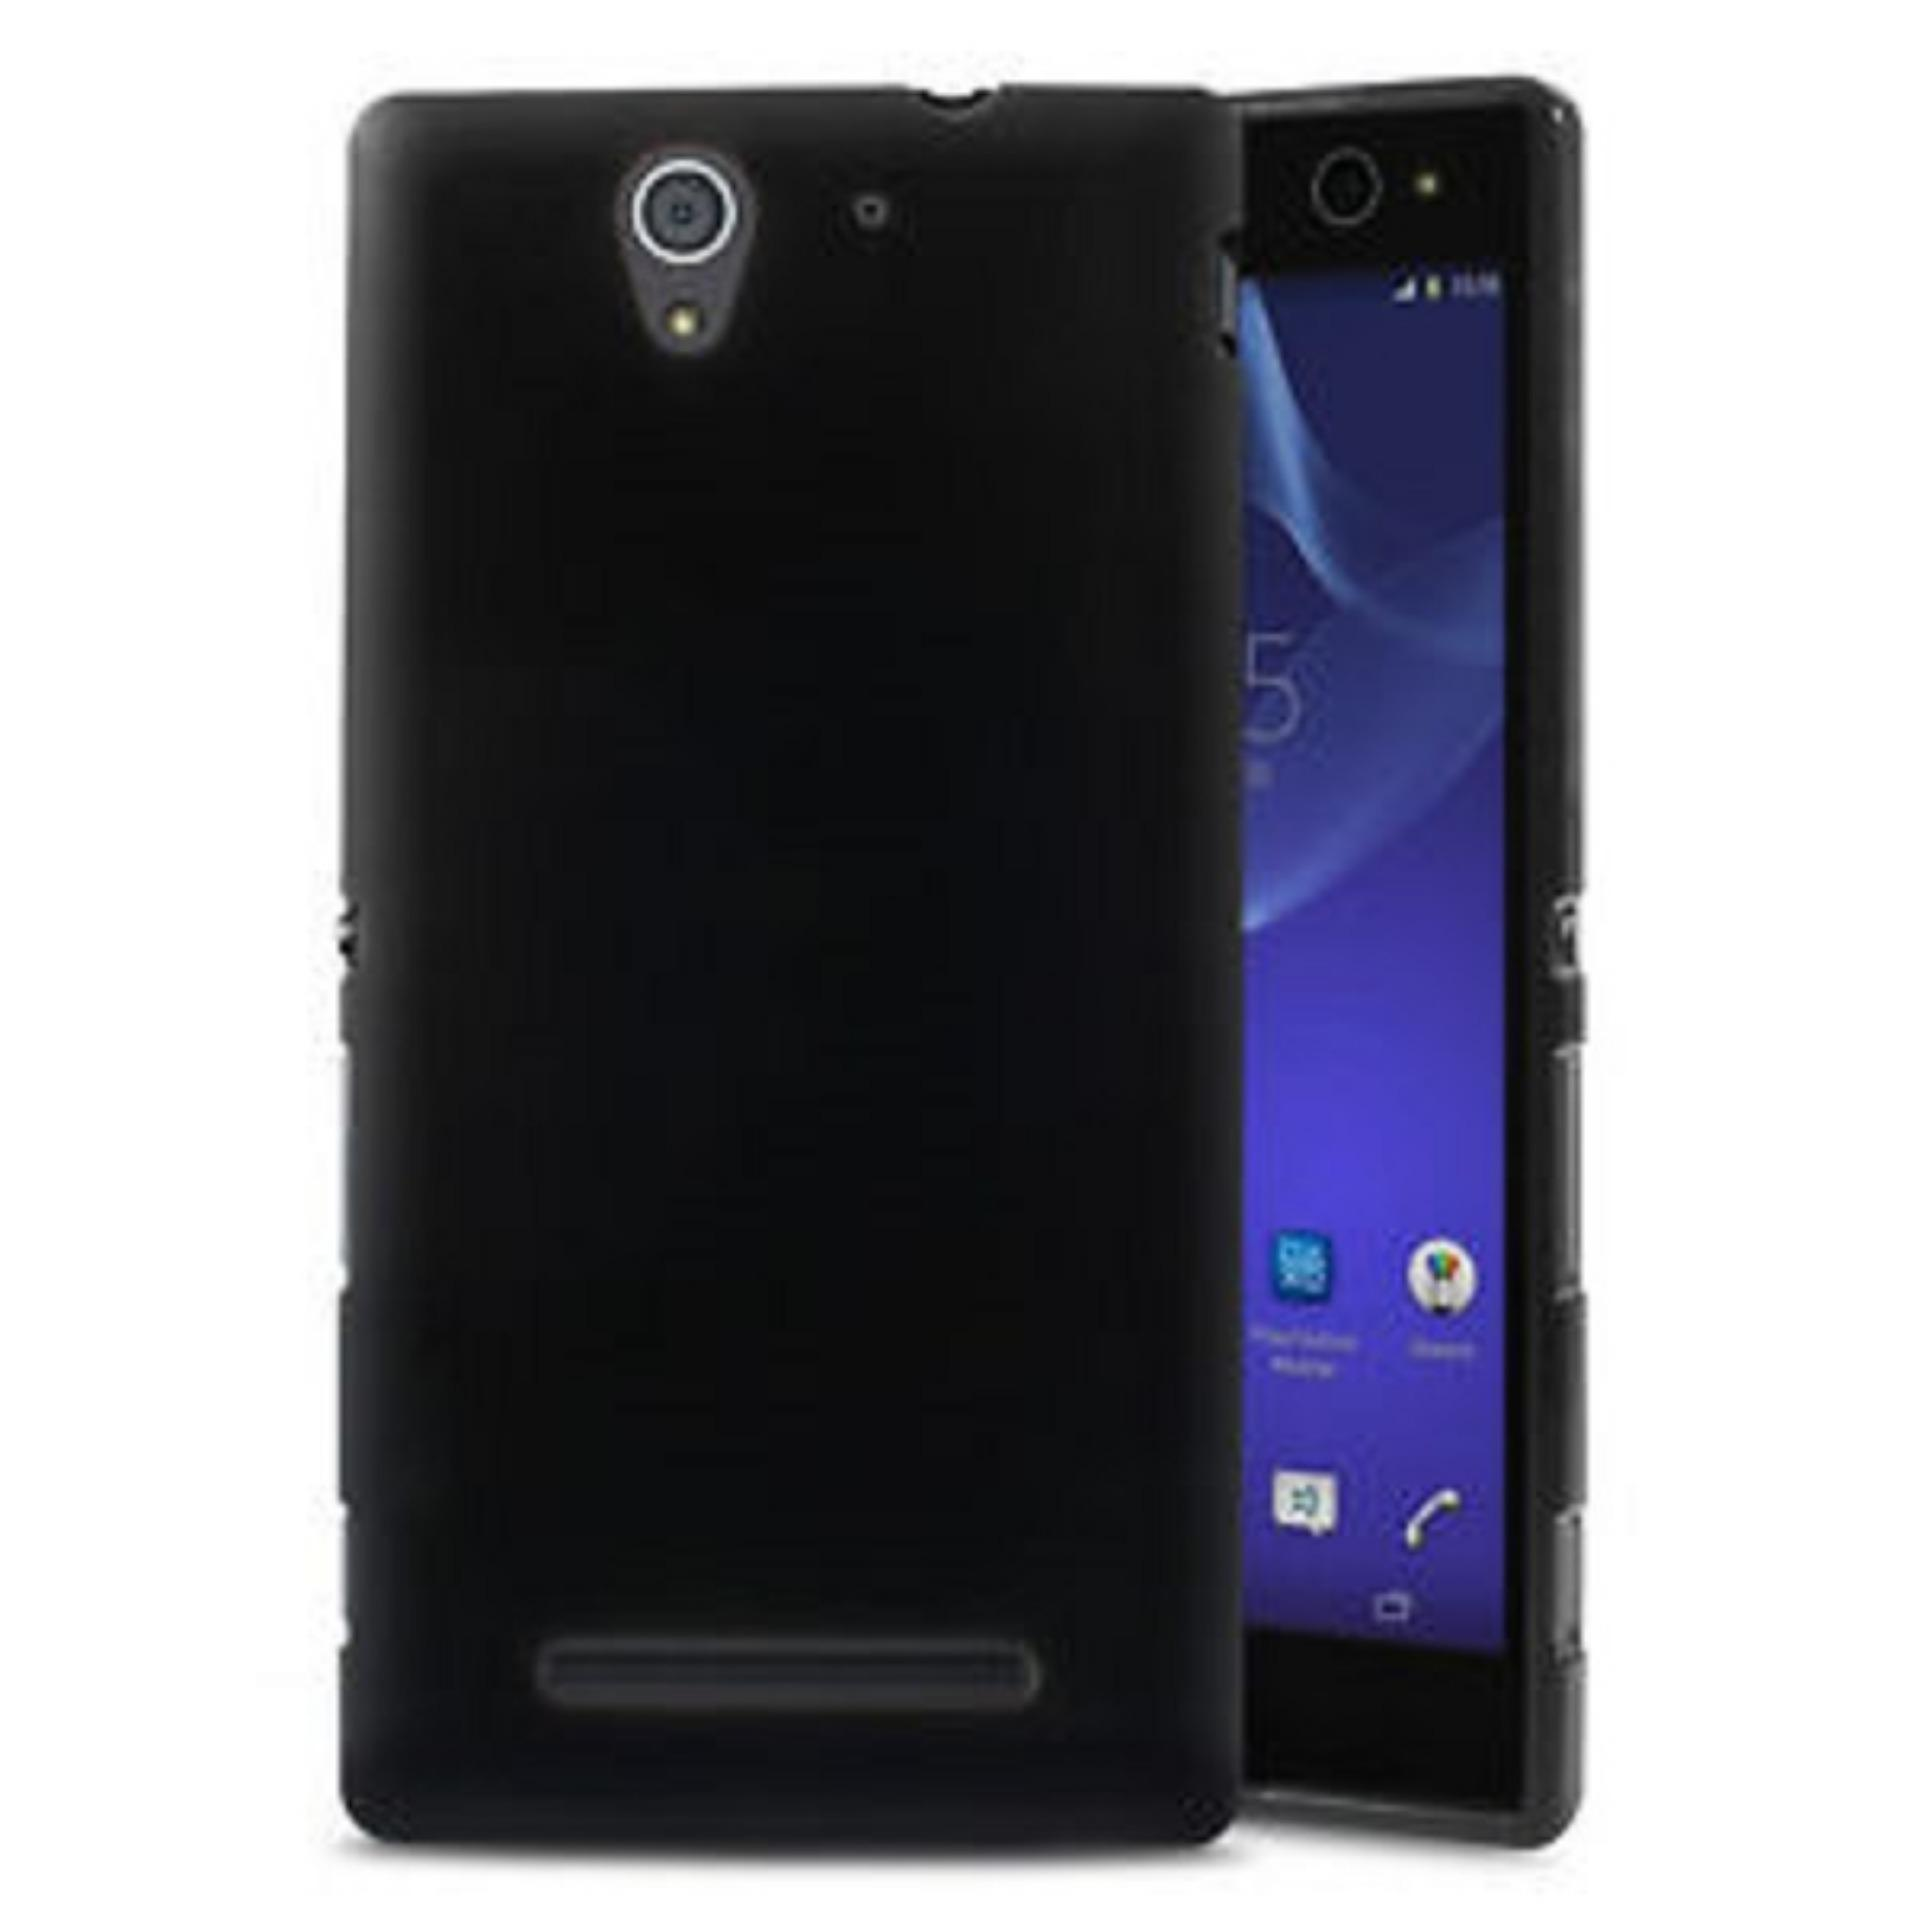 DarkNight for Sony Xperia Experia C3 / D2533 / Docomo / Dual | Slim Case Black Matte Softcase Premium (Anti Minyak/Anti Sidik Jari) - Hitam Doff